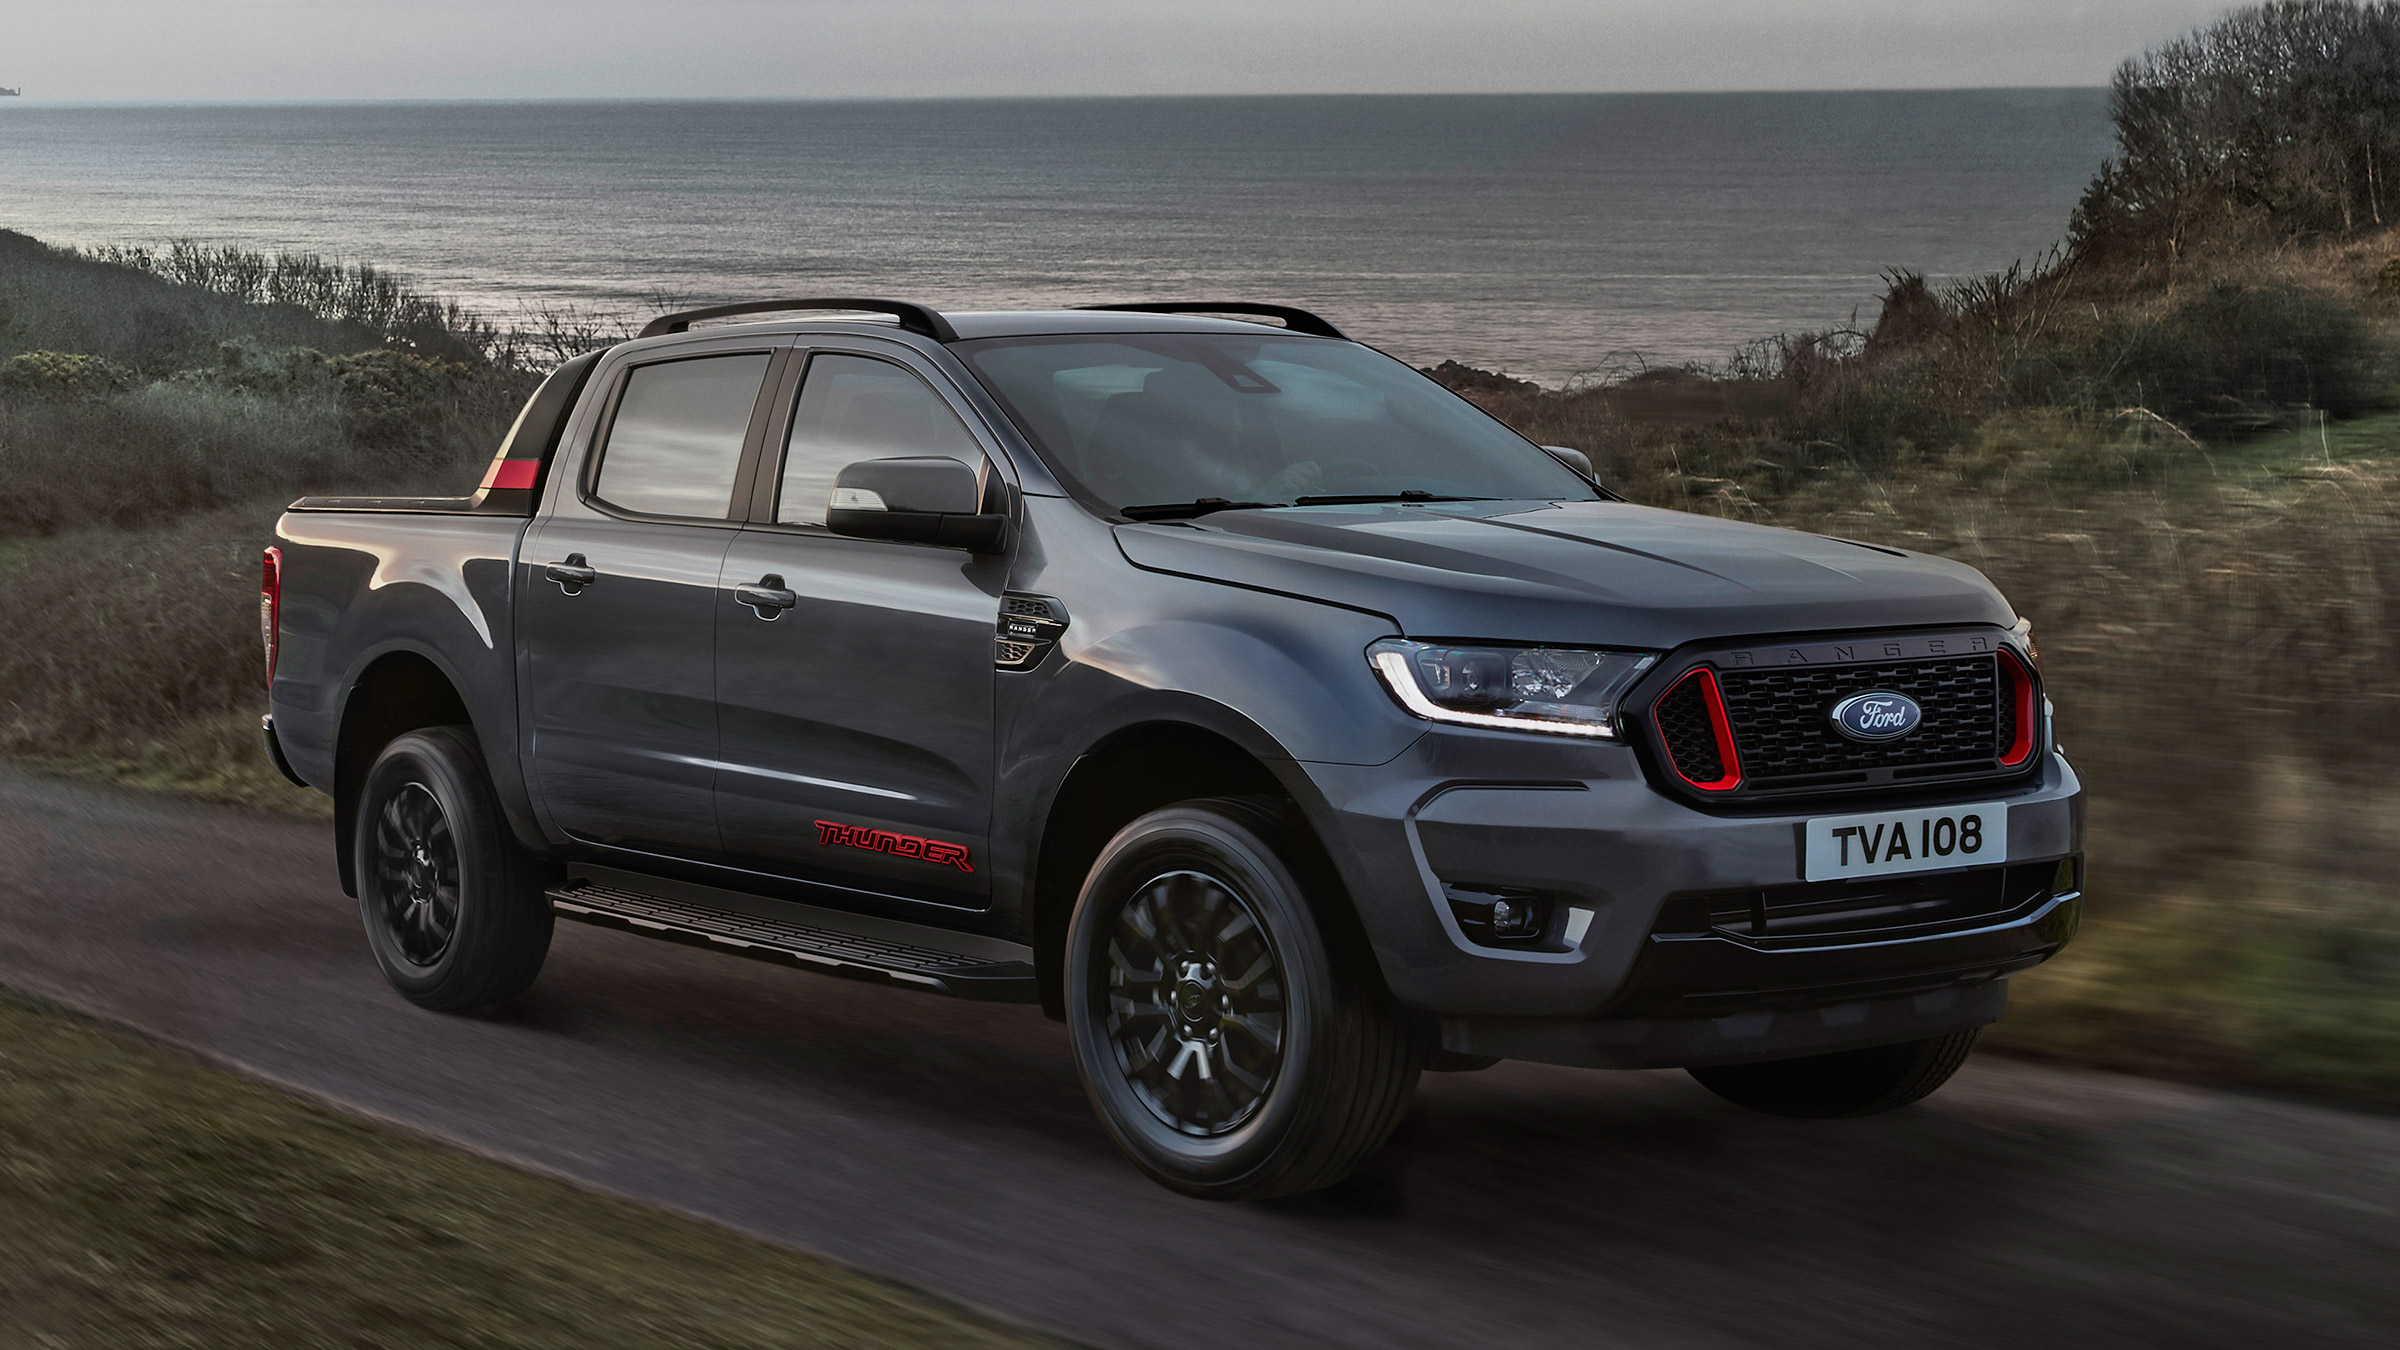 Ford has prepared a limited run of its Ranger pickup truck for Europe. Called Thunder, it comes limited to 4,500 production units starting from £32,965 in the UK.